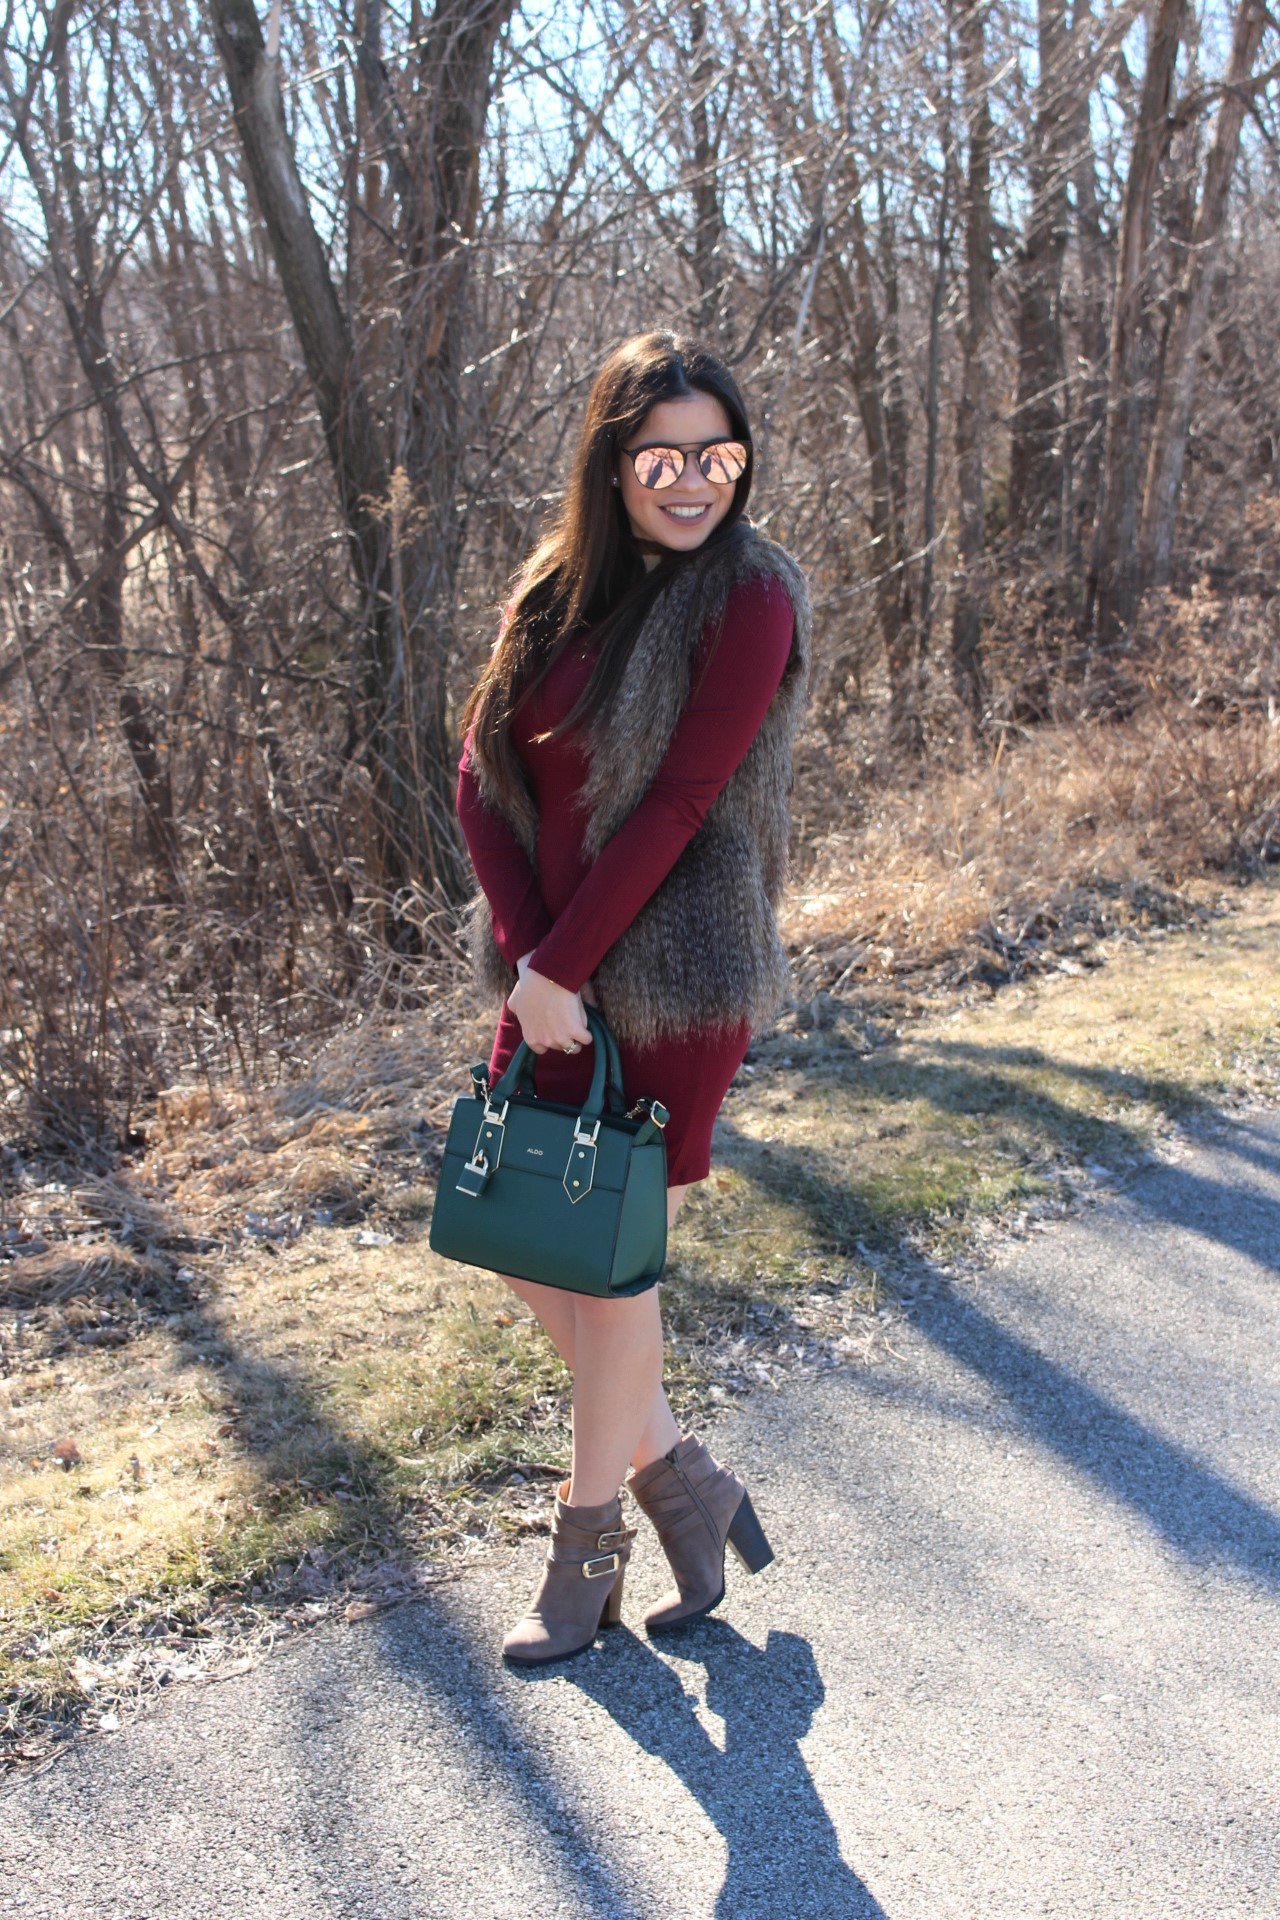 vestido vinotinto burgundy dress quay sunglasses aldo handbag by alejandra avila tufashionpetite